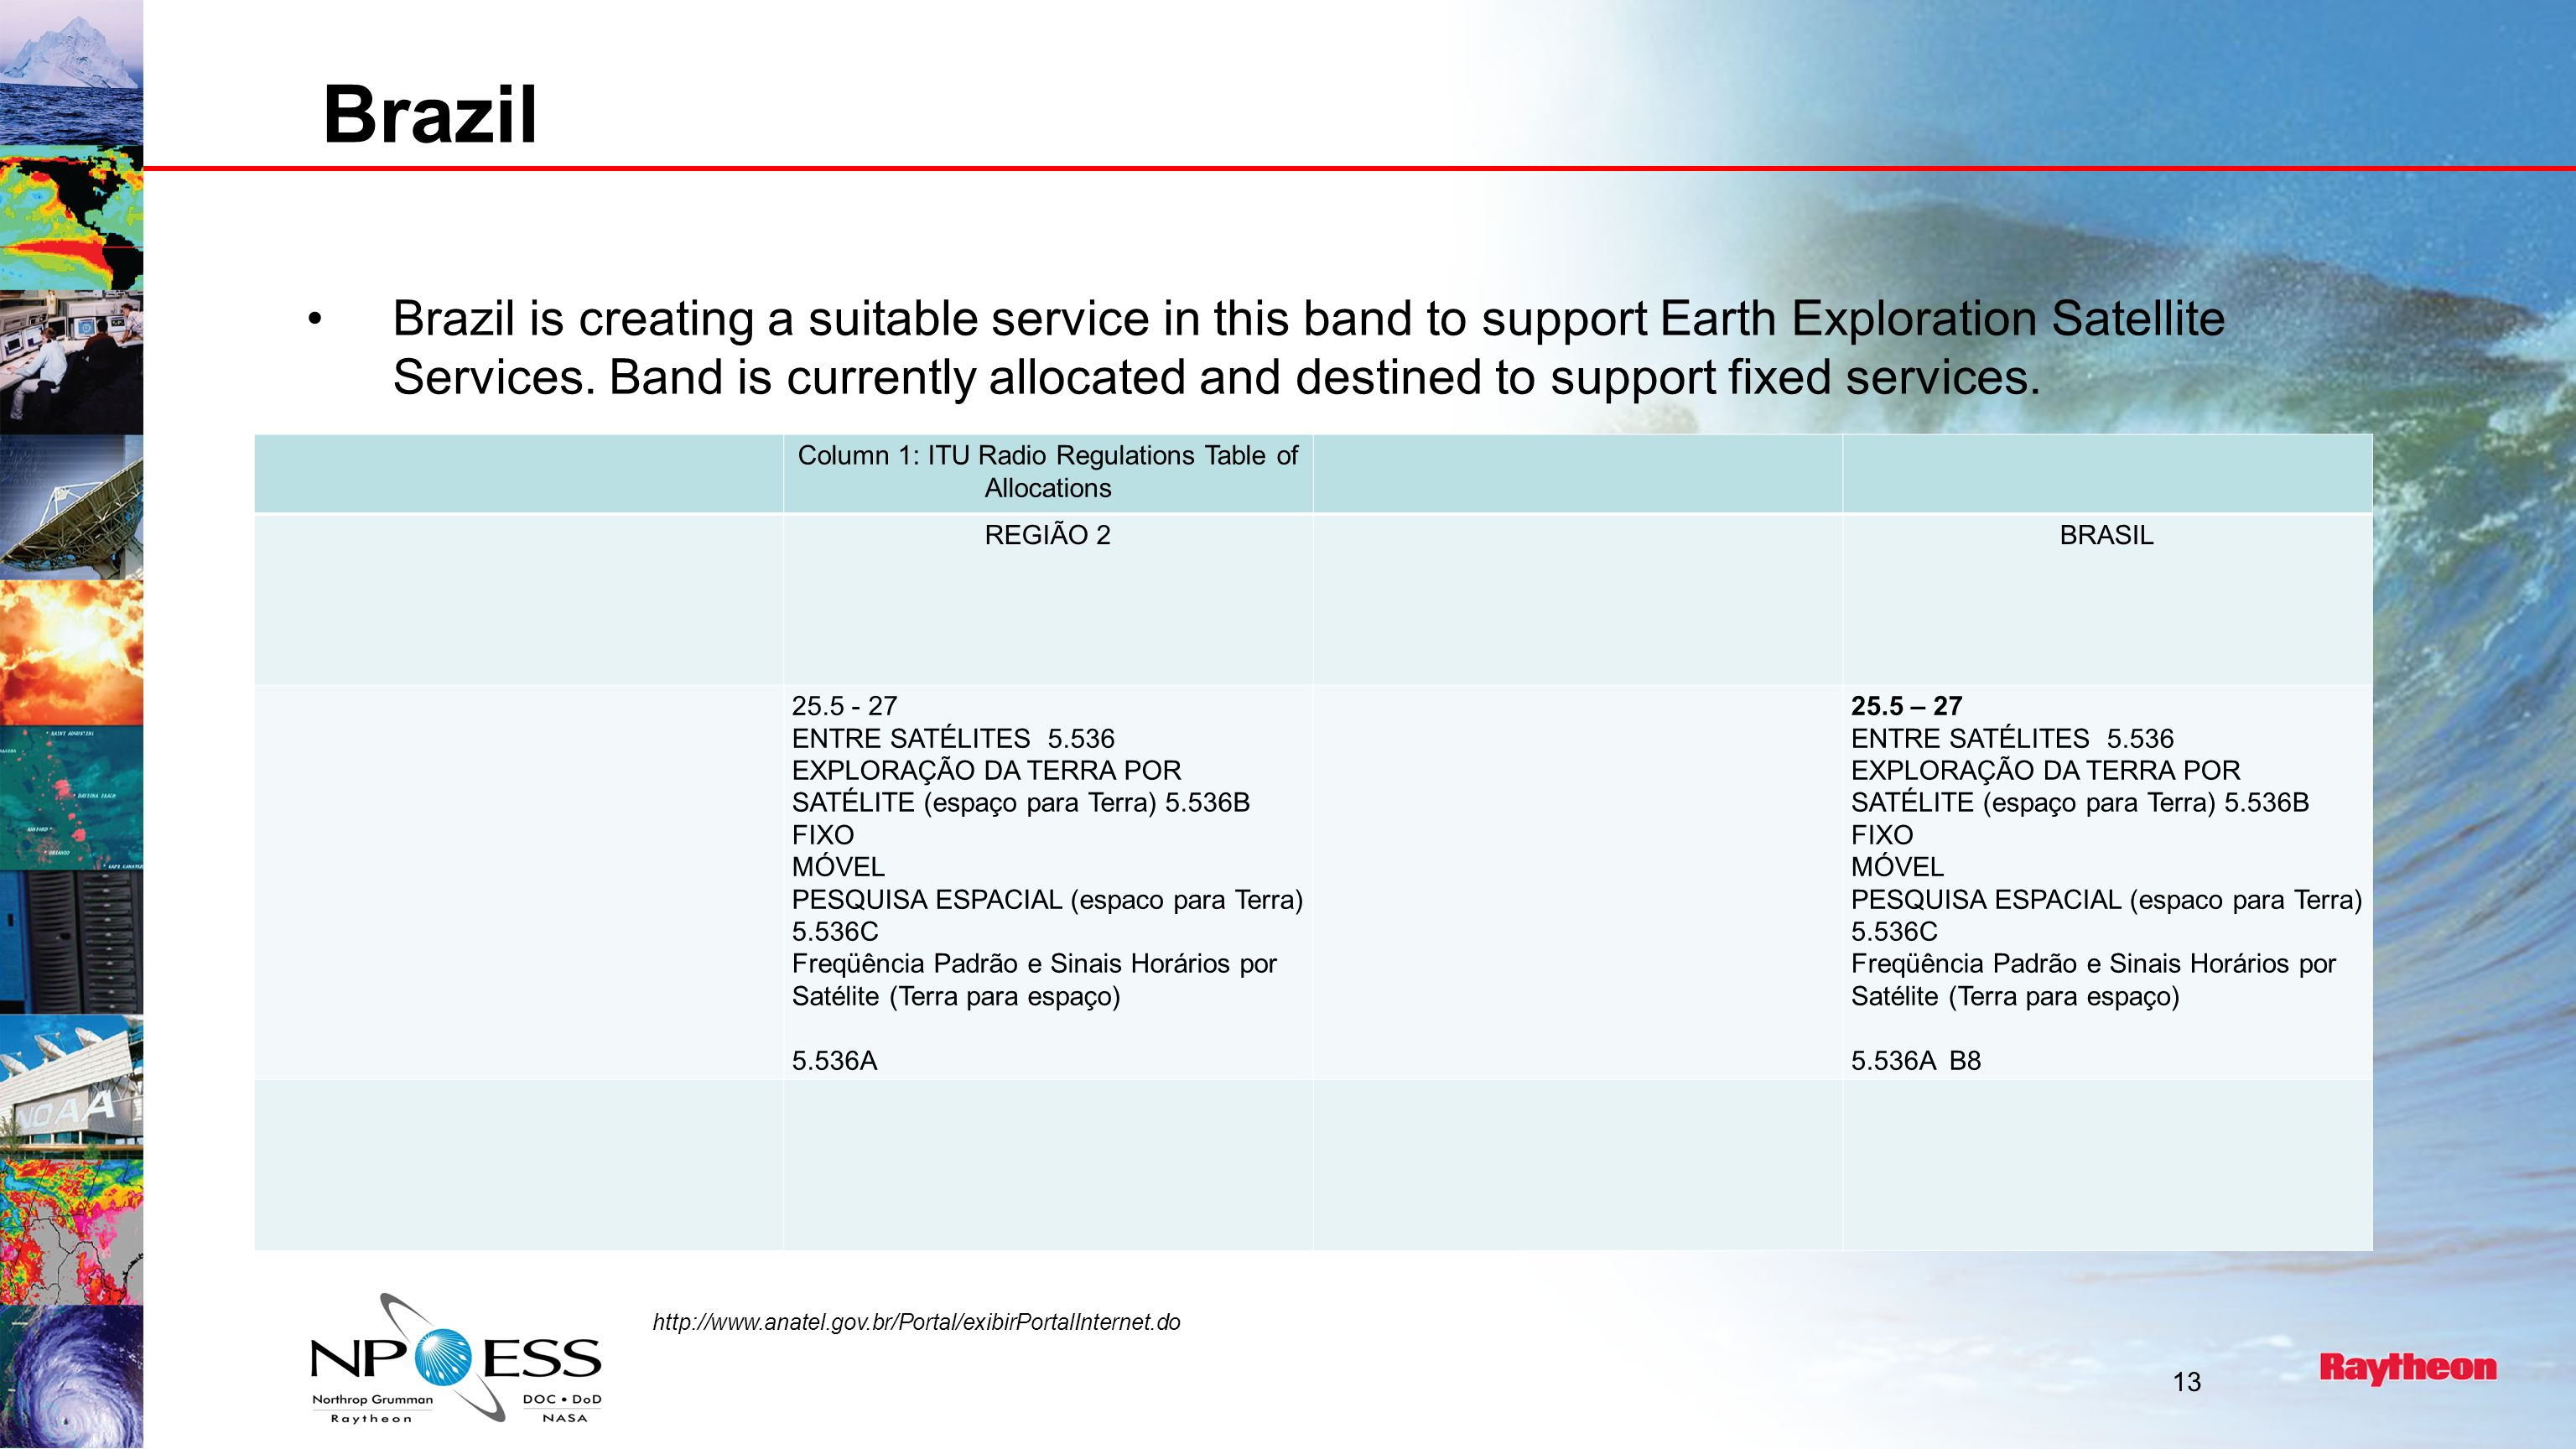 Brazil Brazil is creating a suitable service in this band to support Earth Exploration Satellite Services.